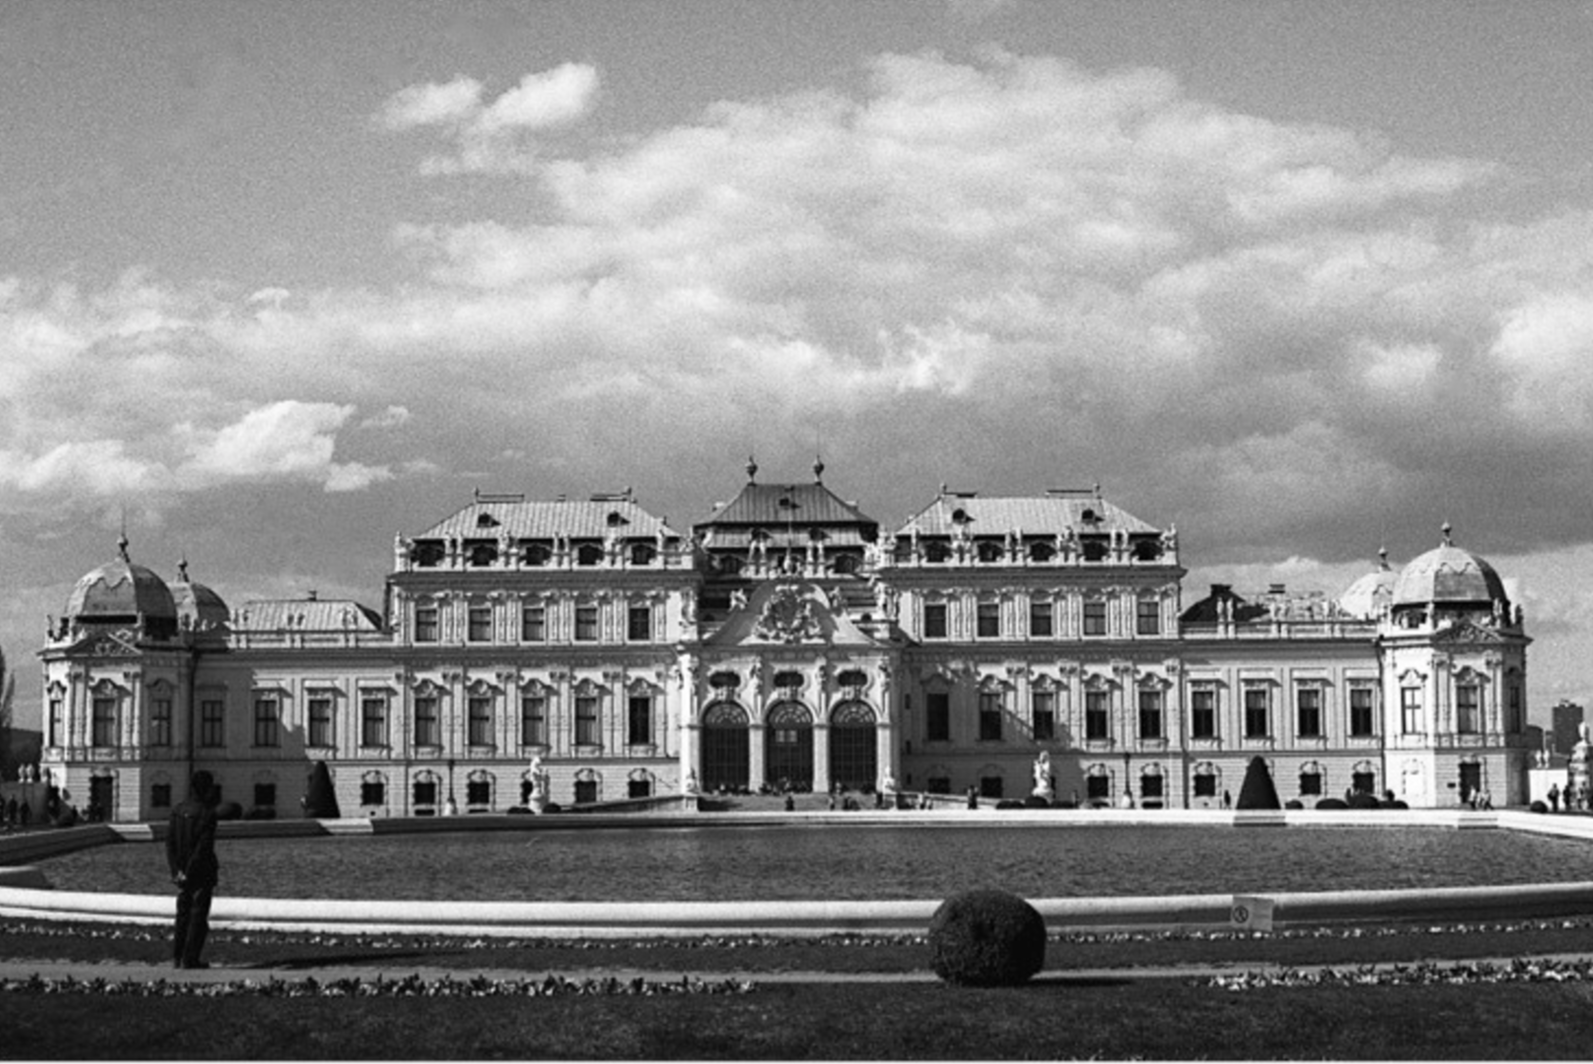 A man meditating on the beauty of the Belvedere Palace, Vienna, Austria (April 19th 2013)  //Olympus OM-2N, Fuji Neopan 400, Epson v330// I found this man admiring the Belvedere Palace really beautiful. His aloneness amongst the grandeur of this building made me think of the great capabilities of man to create beauty and how we can sometimes seem small in relation to the things that we have made.